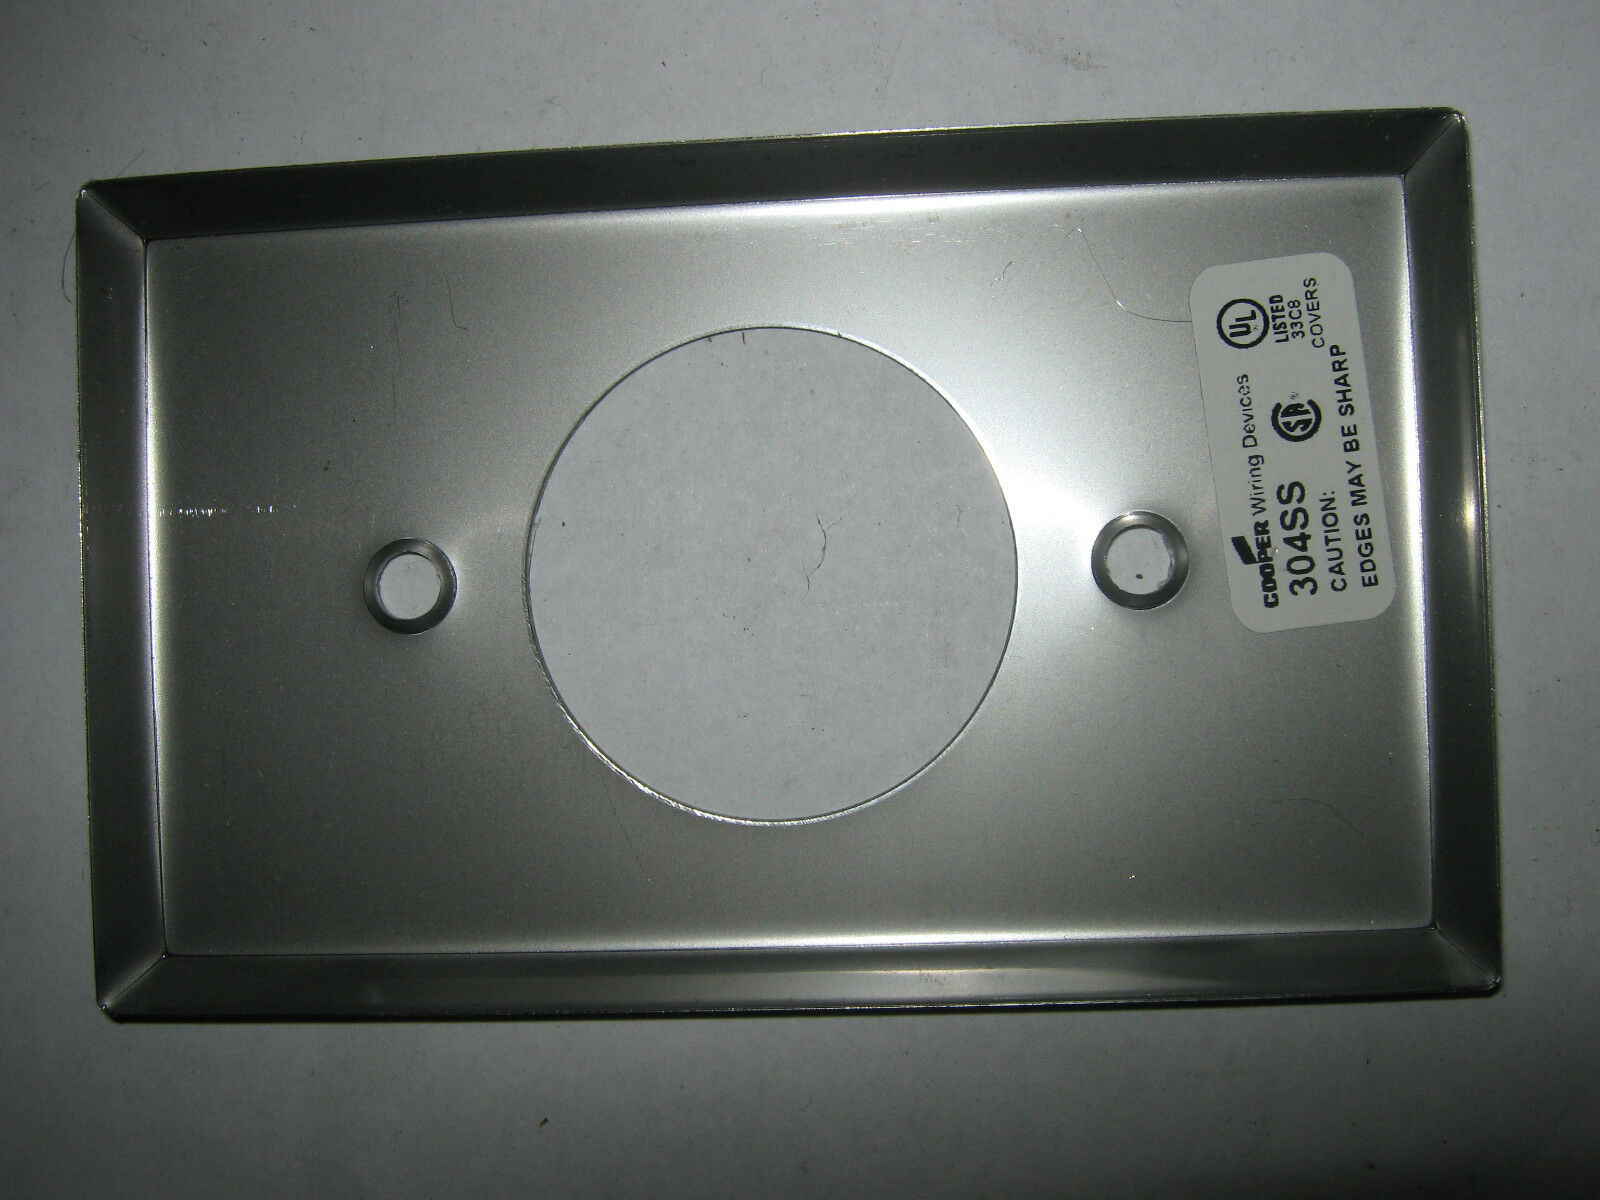 Stainless Steel Outlet Covers Cooper 304Ss Stainless Steel Wallplate Outlet Cover In Factory Bag